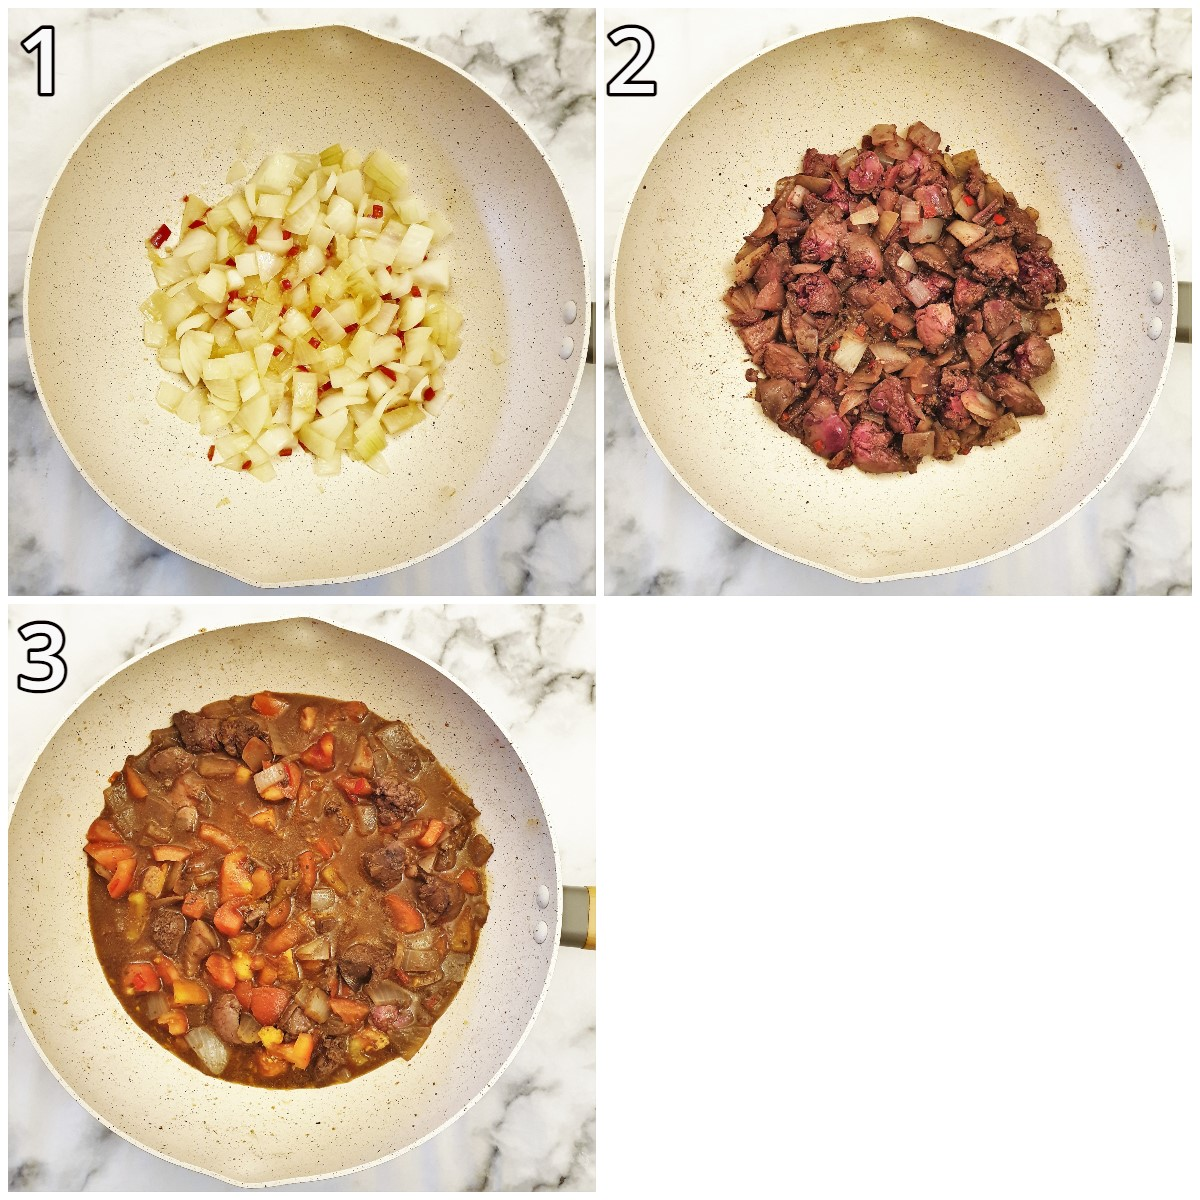 Steps for cooking the chicken livers.